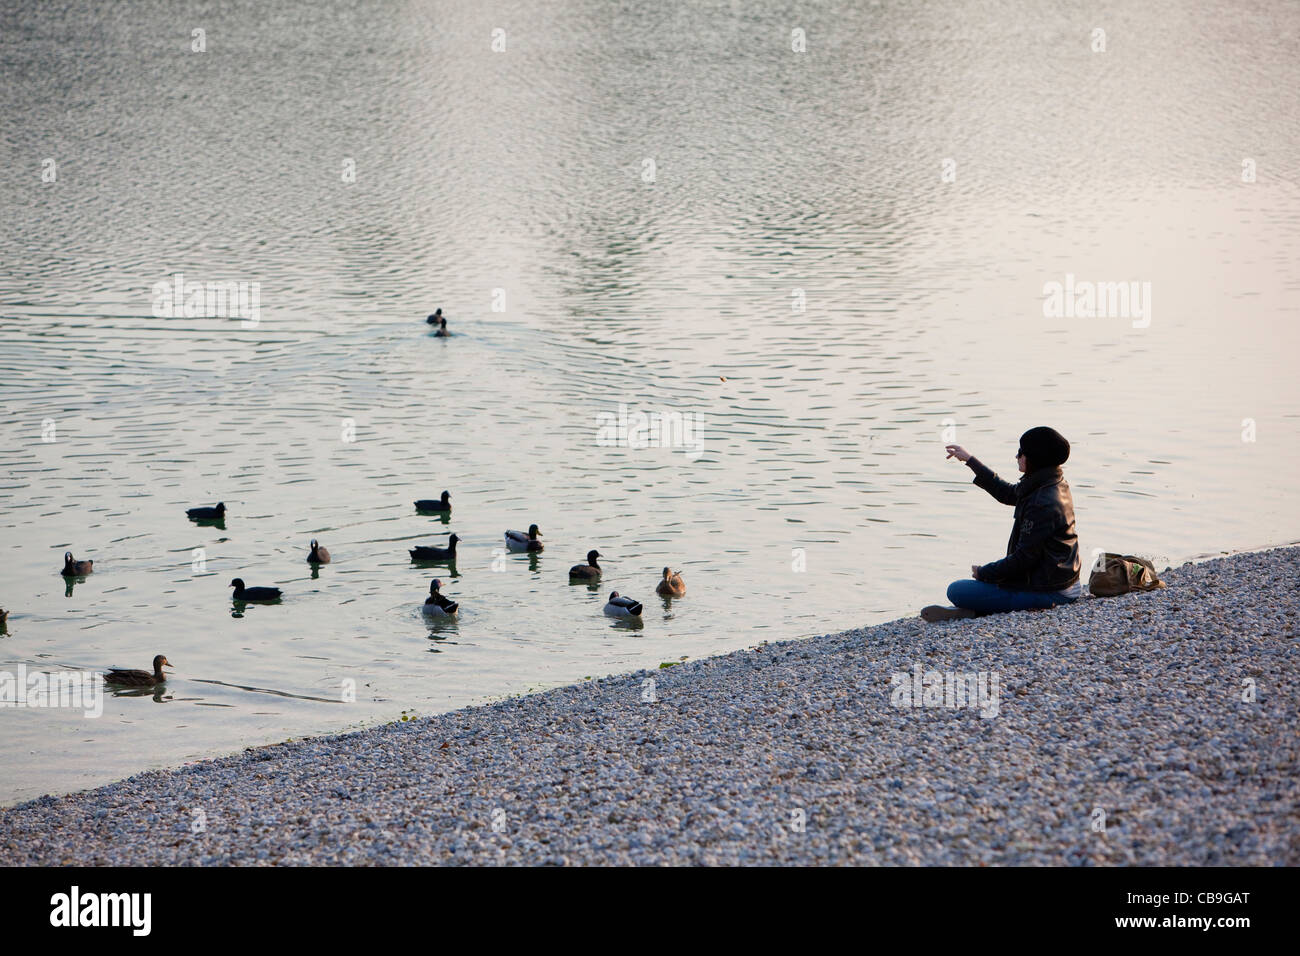 A girl is feeding ducks in park sitting on pebbles near lake. - Stock Image